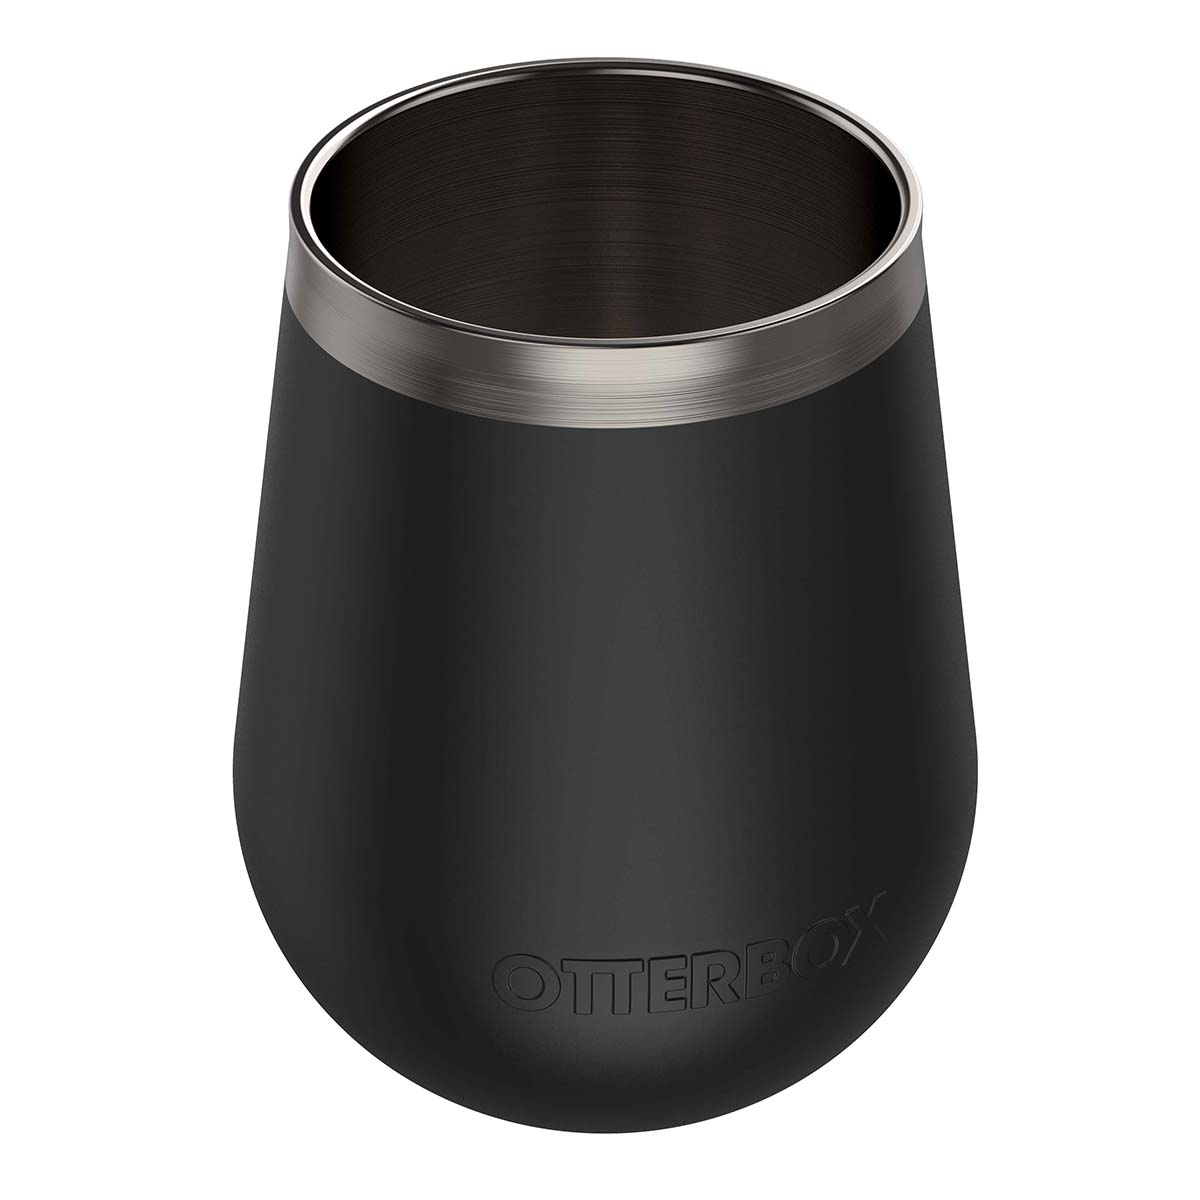 AIRMKT eCom OtterBox PN 77-60954 Wine_Tumbler_FrontRight_SilverPanther WEB